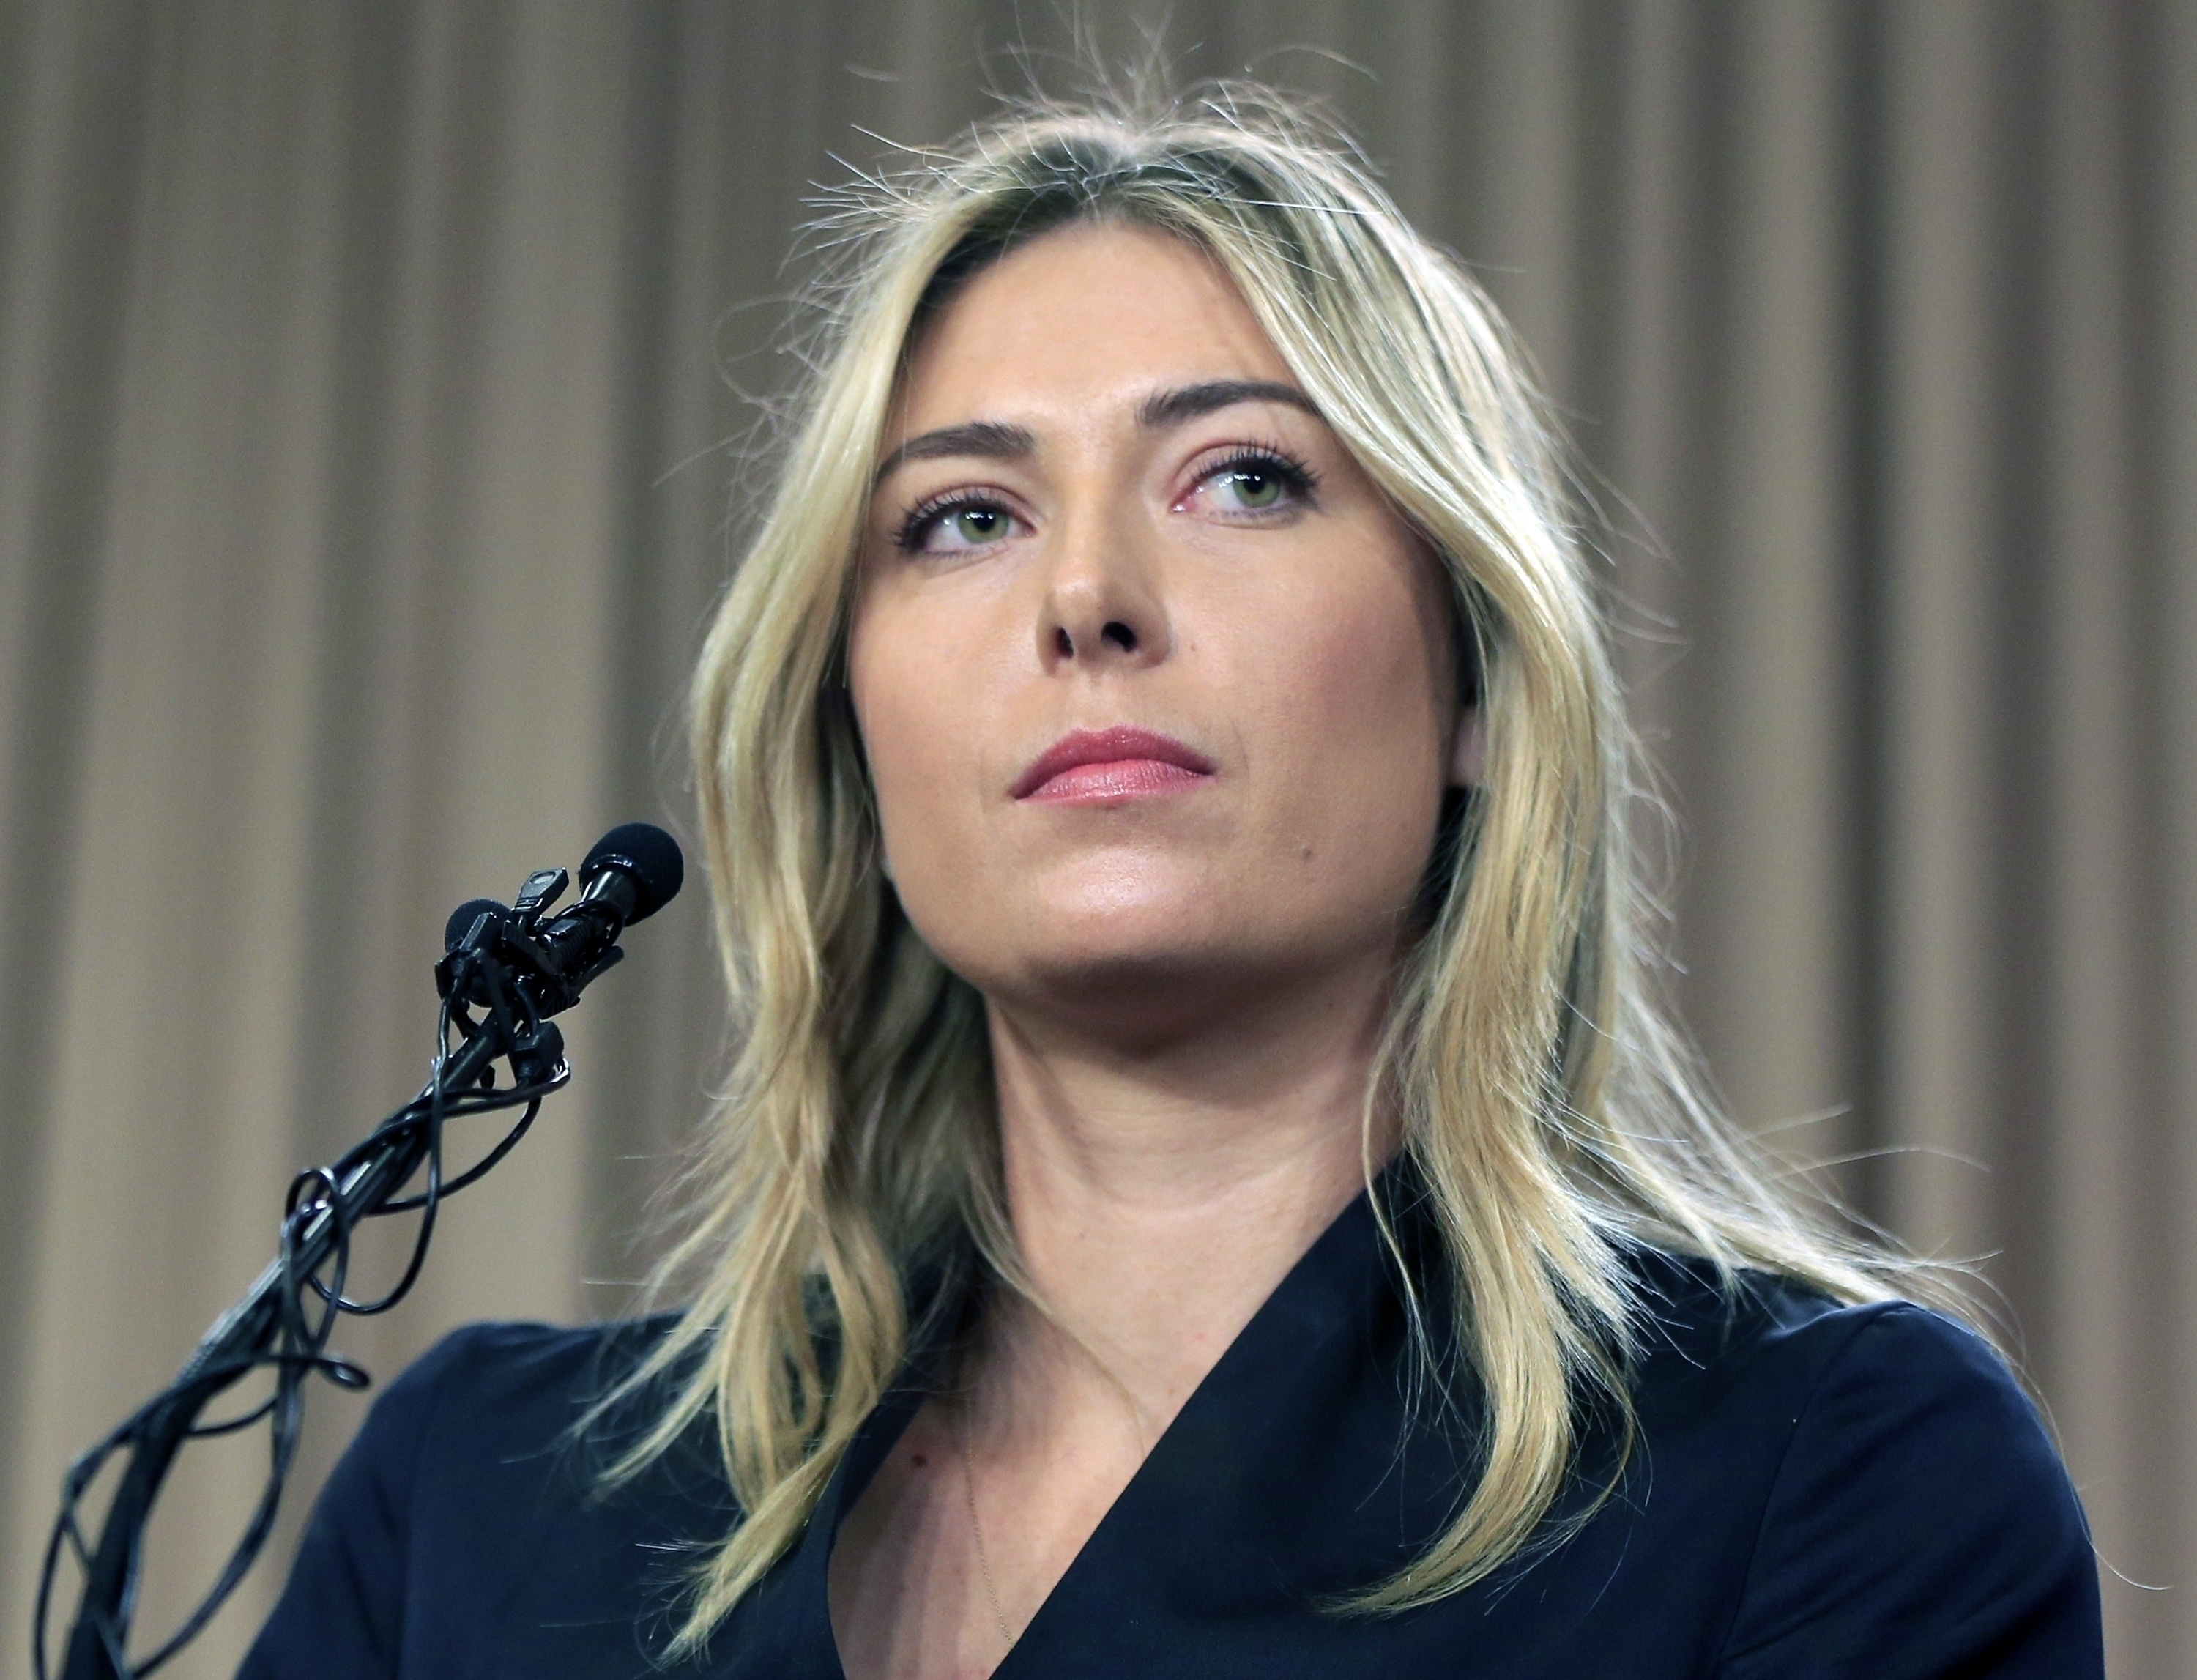 FILE - In this Monday March 7, 2016 file photo, tennis star Maria Sharapova speaks about her failed drug test at the Australia Open during a news conference in Los Angeles. Maria Sharapova will find out the week starting May 15, 2017, if she can compete a